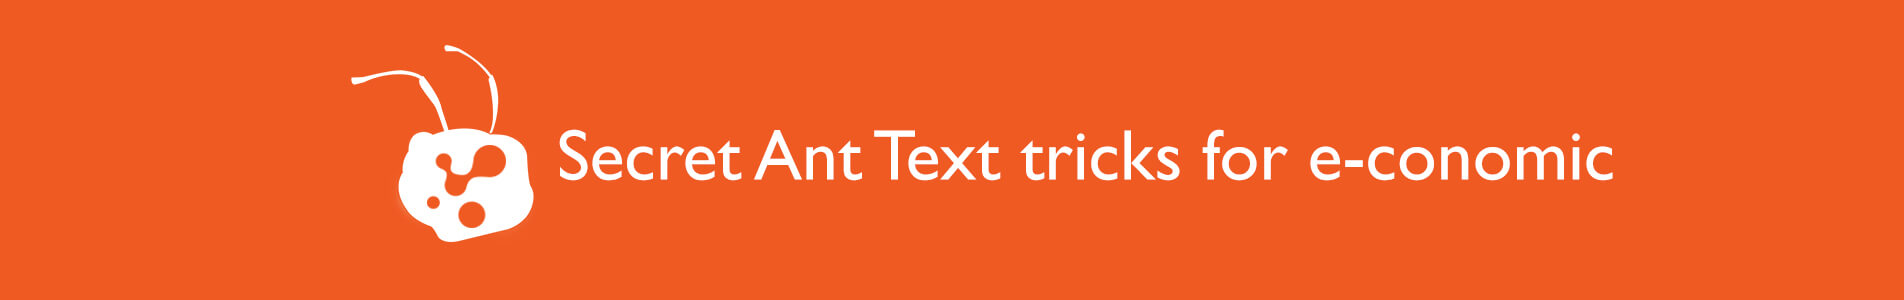 header ant text tips for economic